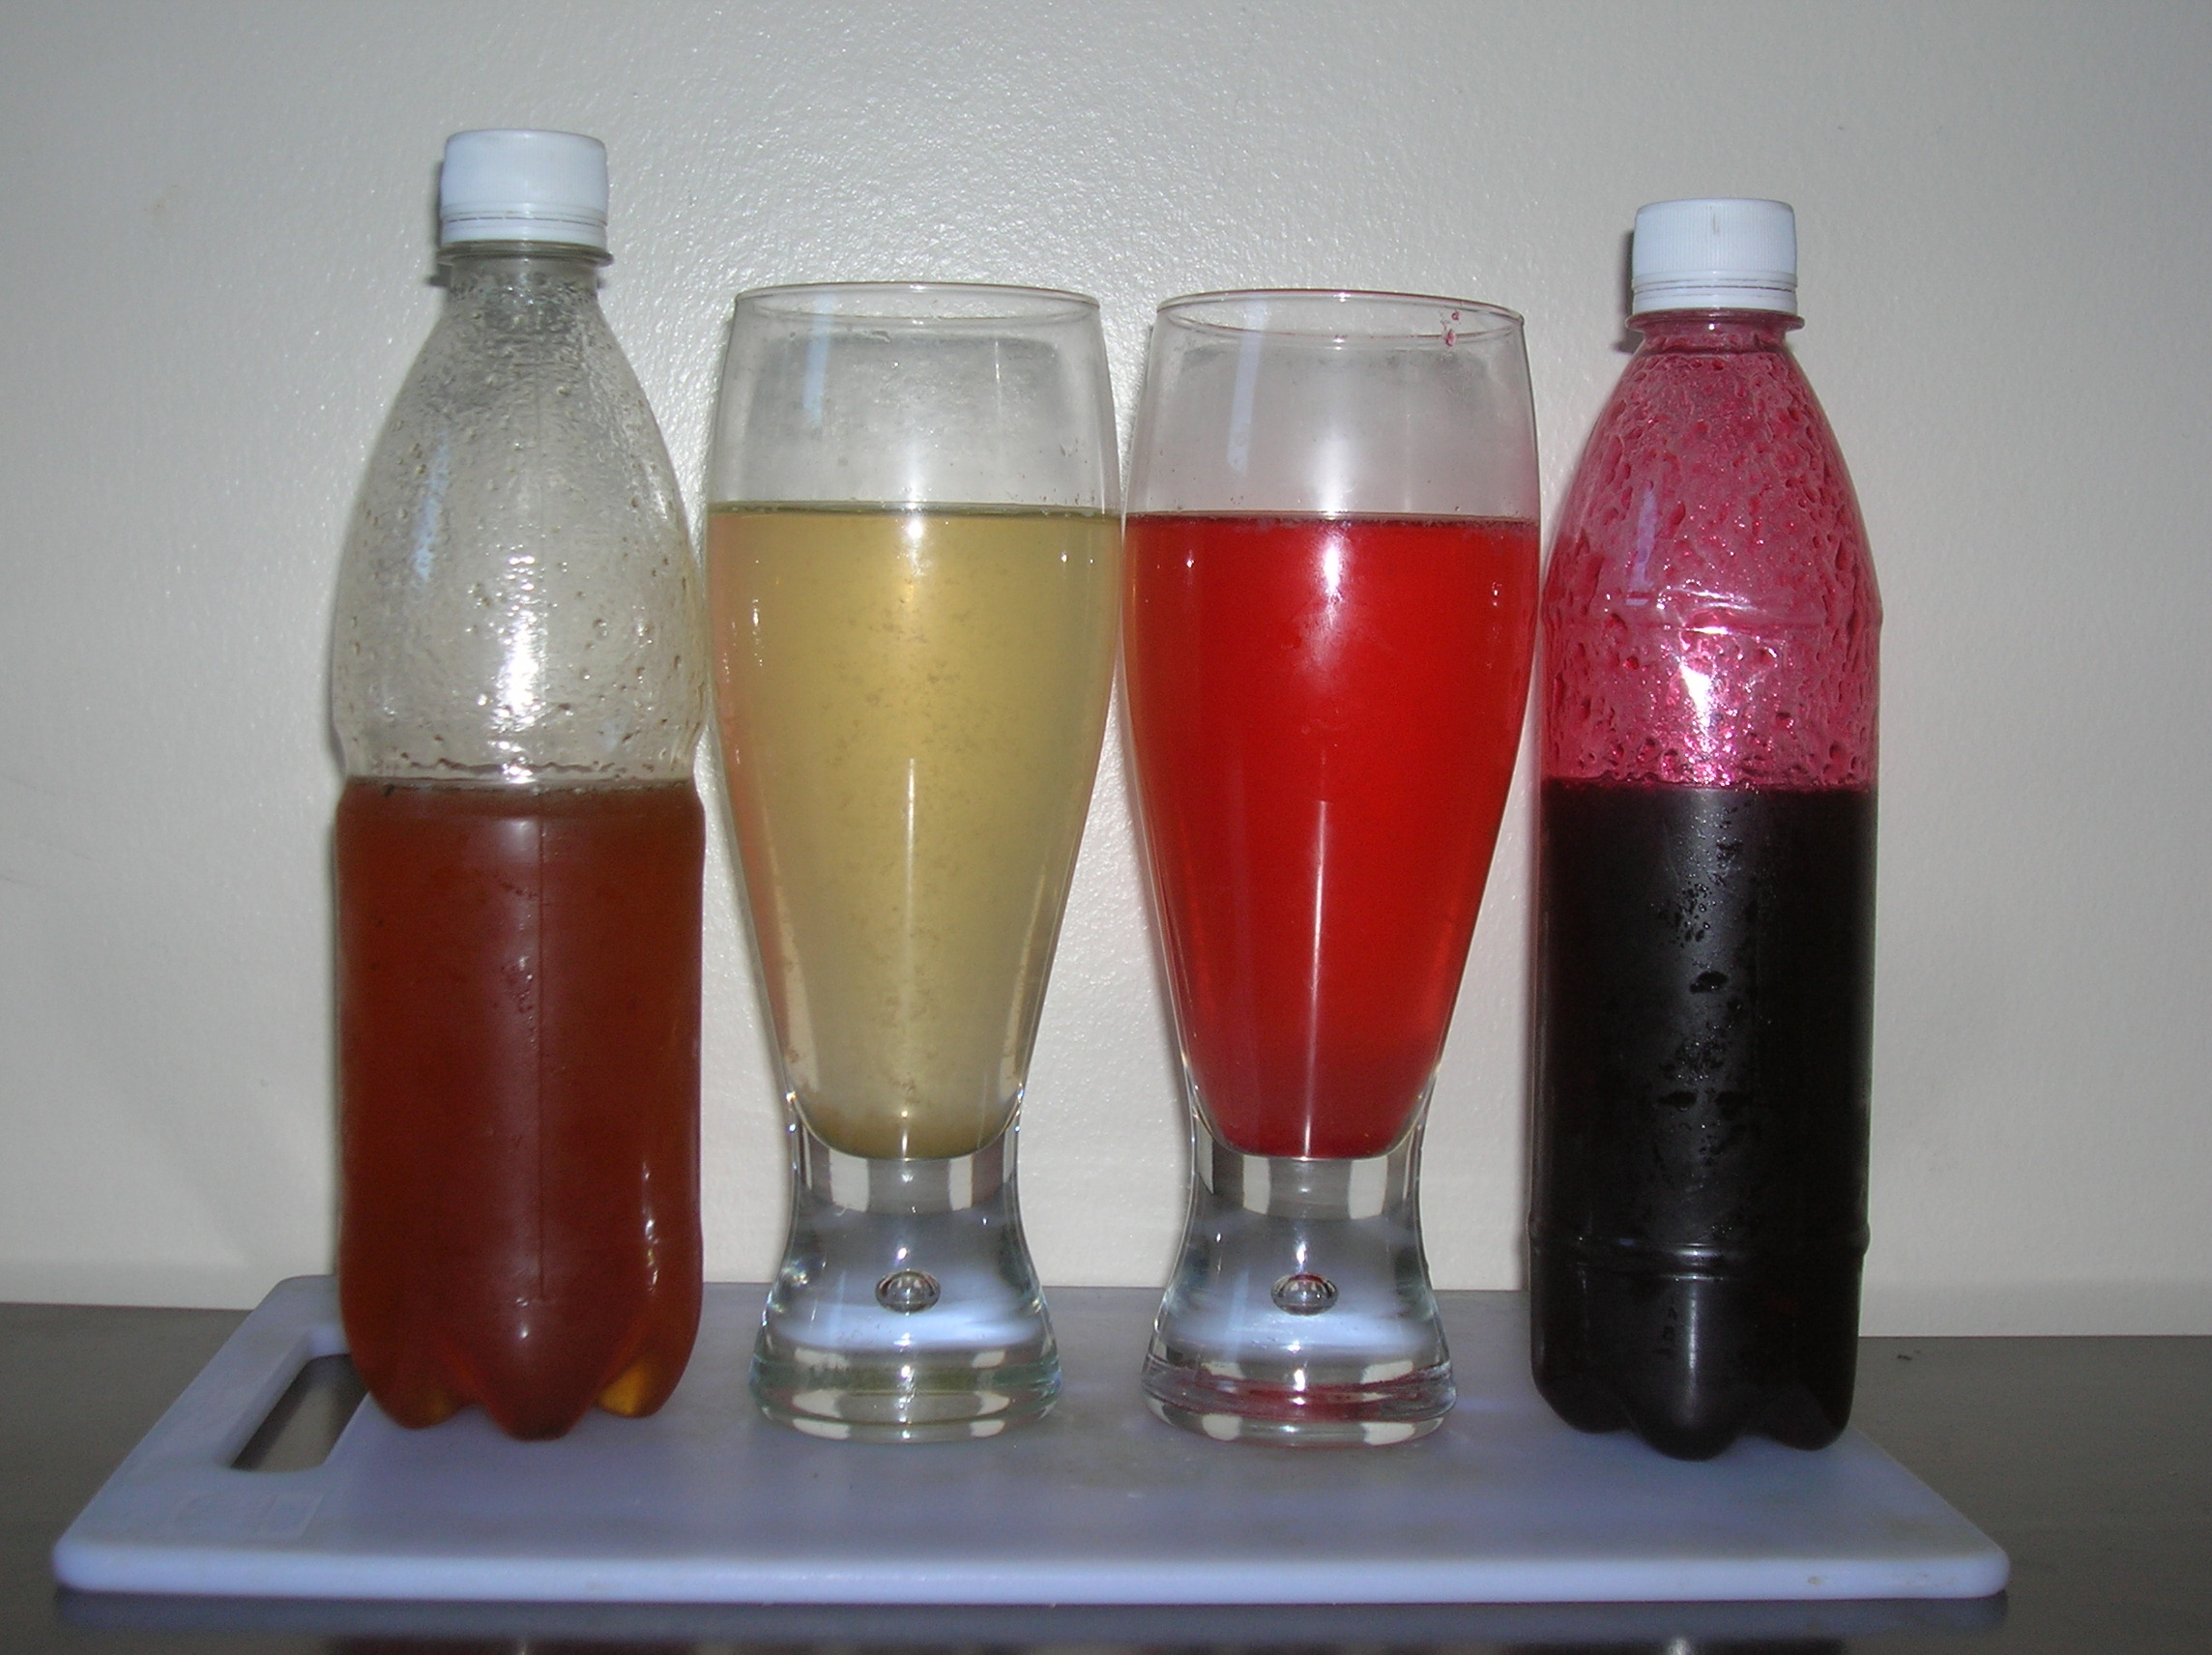 Garcinia_indica_yellow_and_red_syrups_and_drinks.jpg